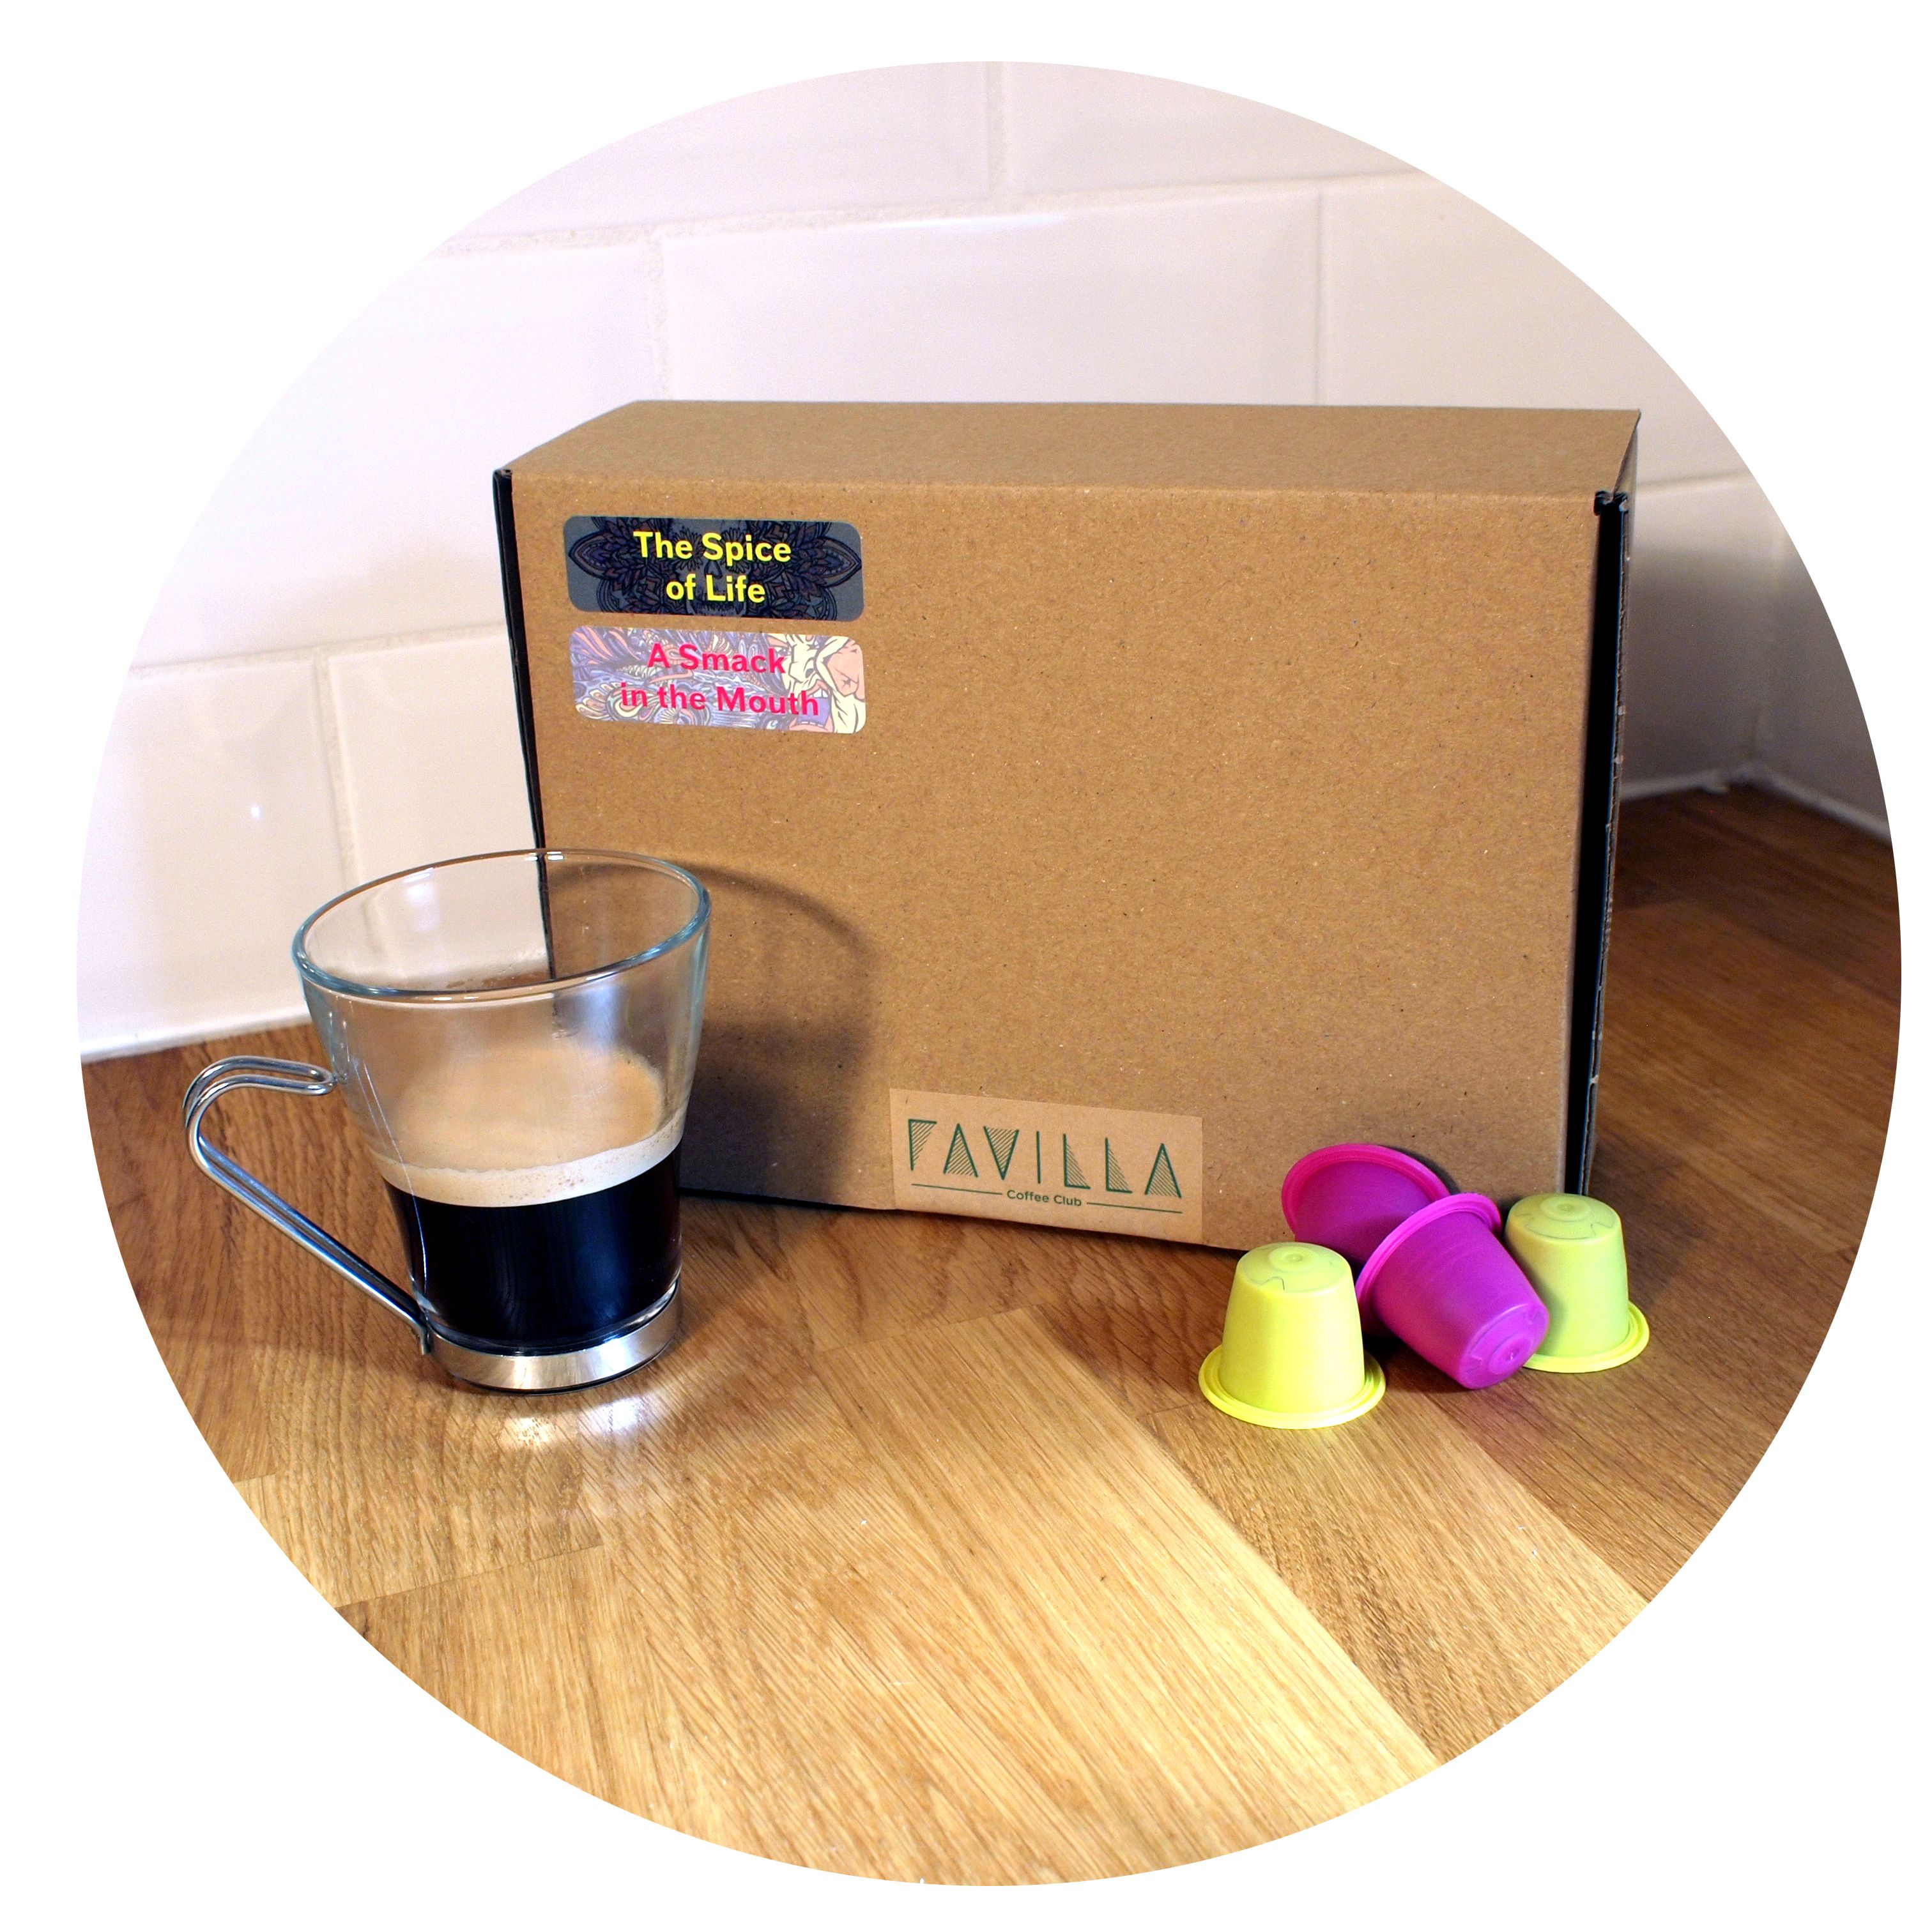 Tired of the same old coffee pods...try out subscription